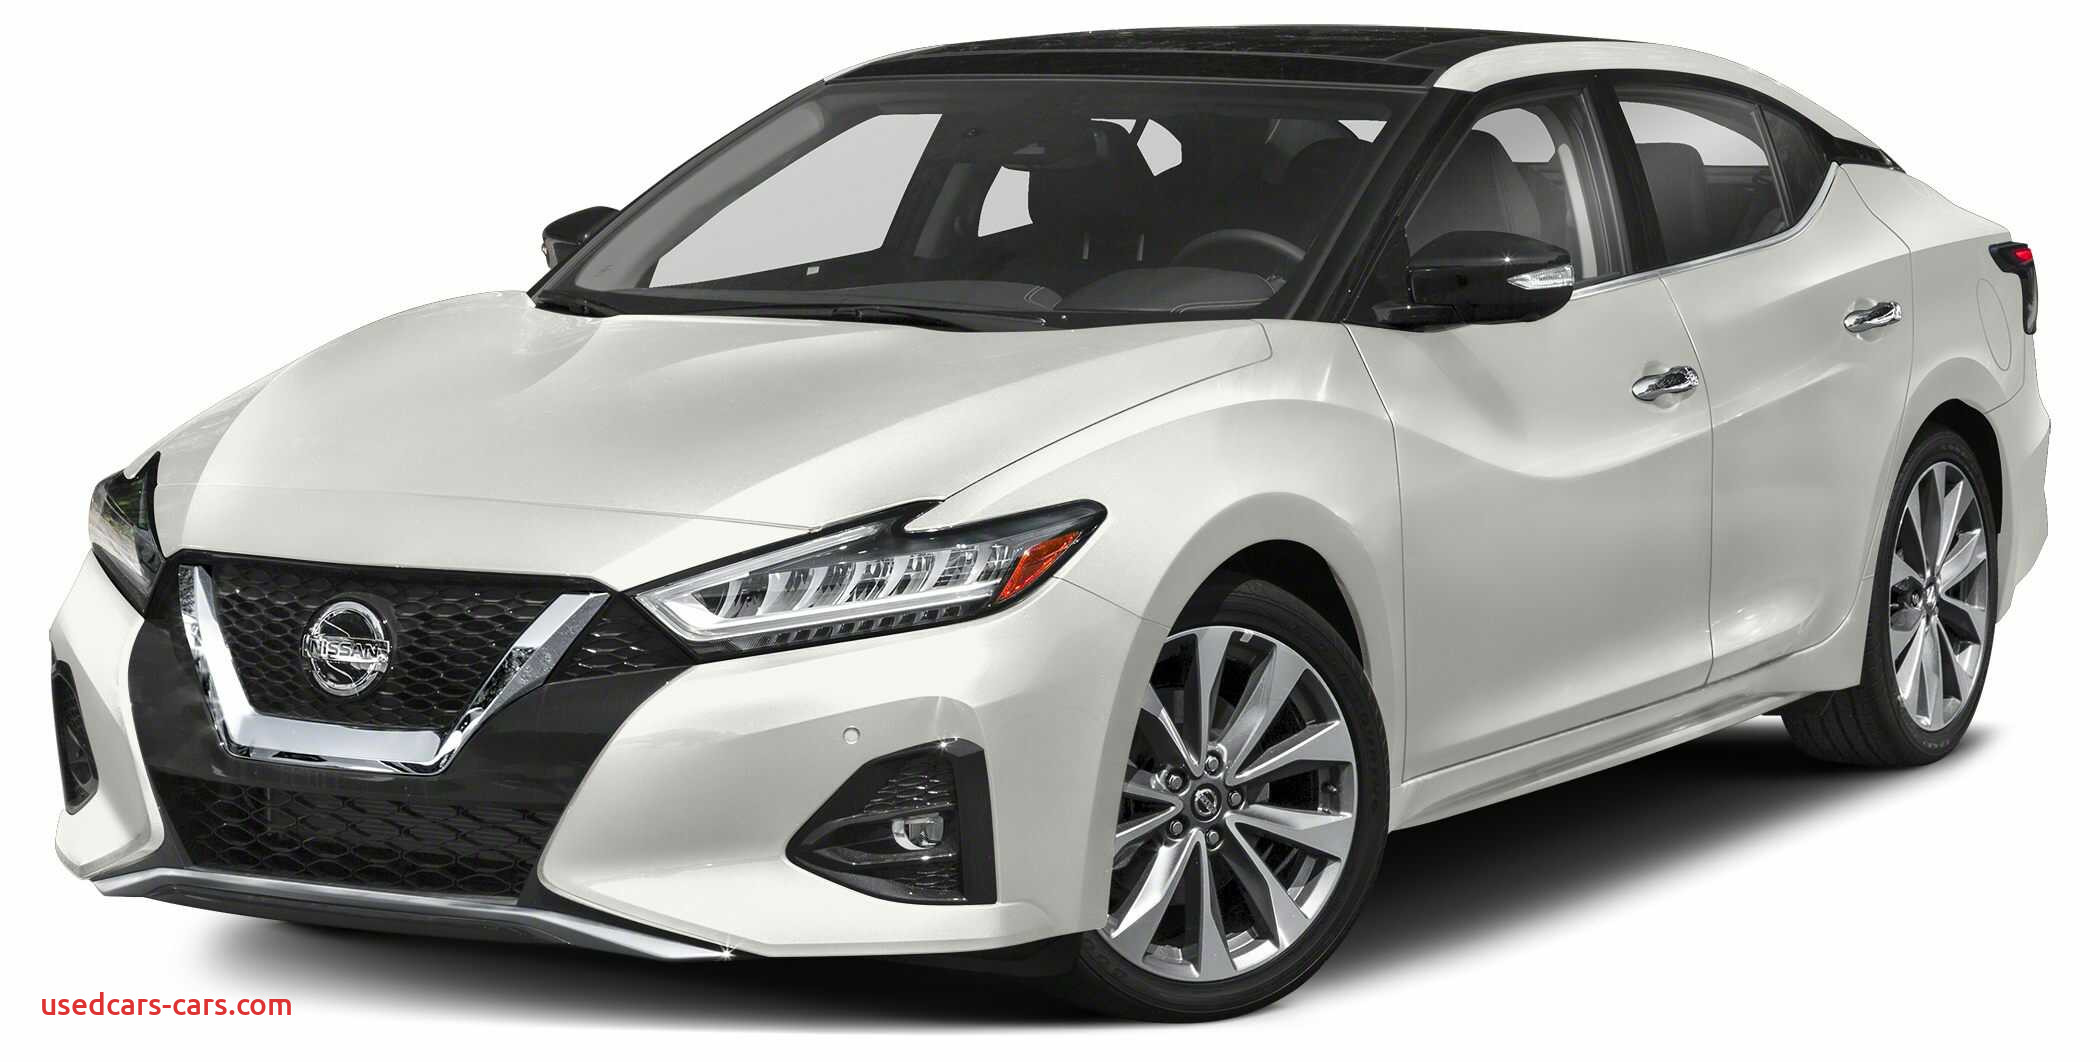 Used Cars for Sale Reno Nv Luxury Check the Dealer Sparks Nissan From Monroe La Cars for Sale